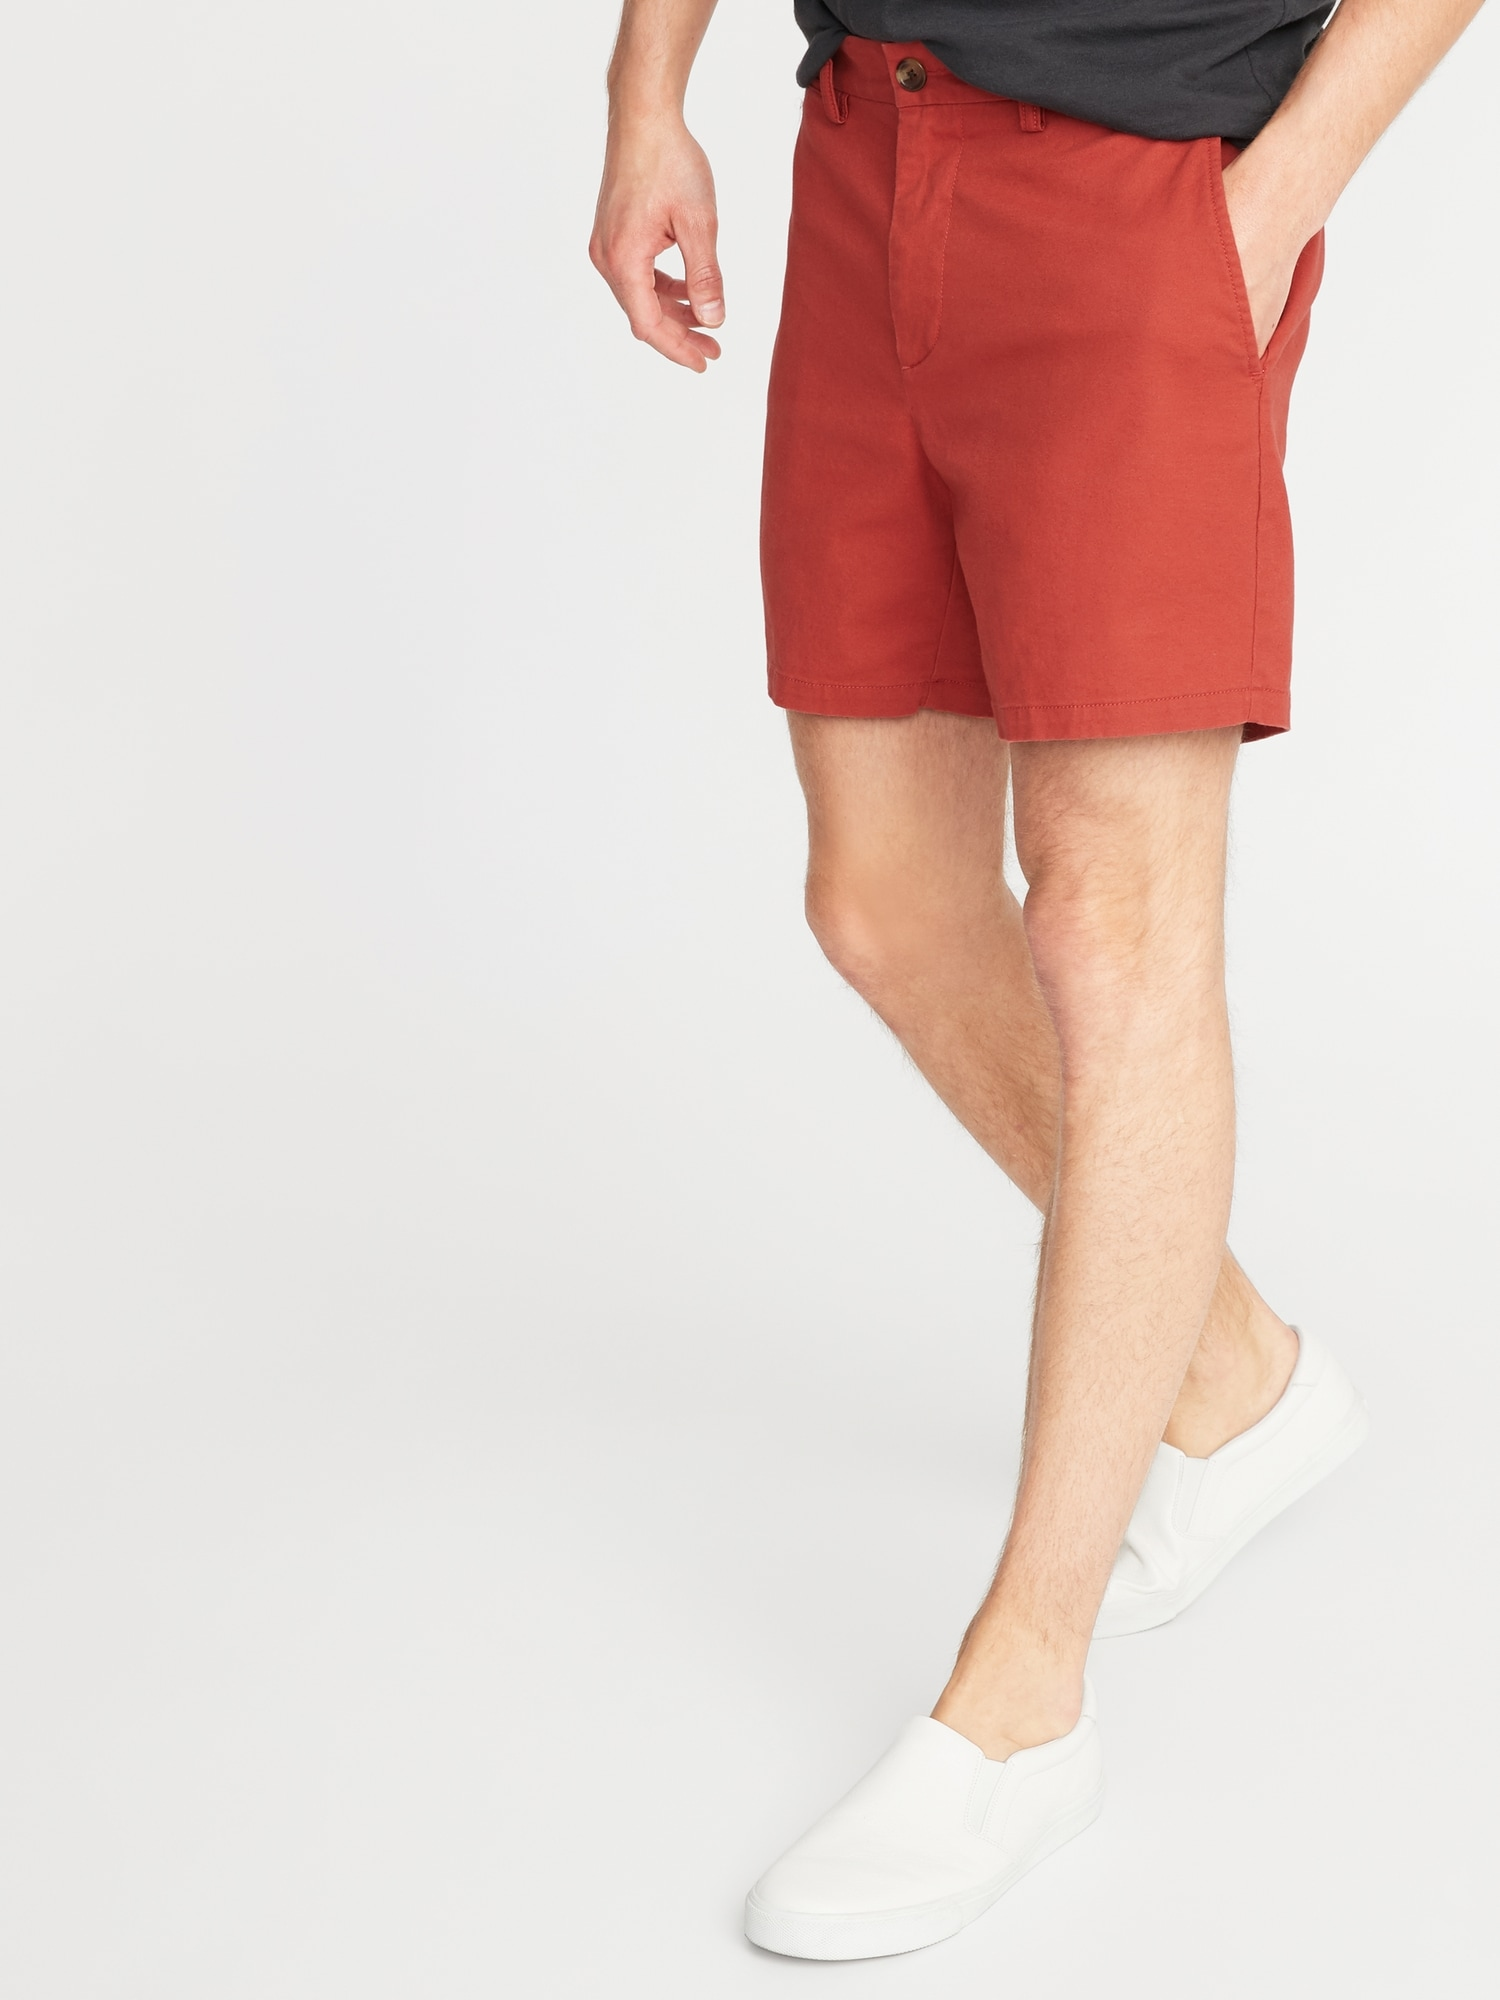 Slim Ultimate Shorts for Men - 6-inch inseam